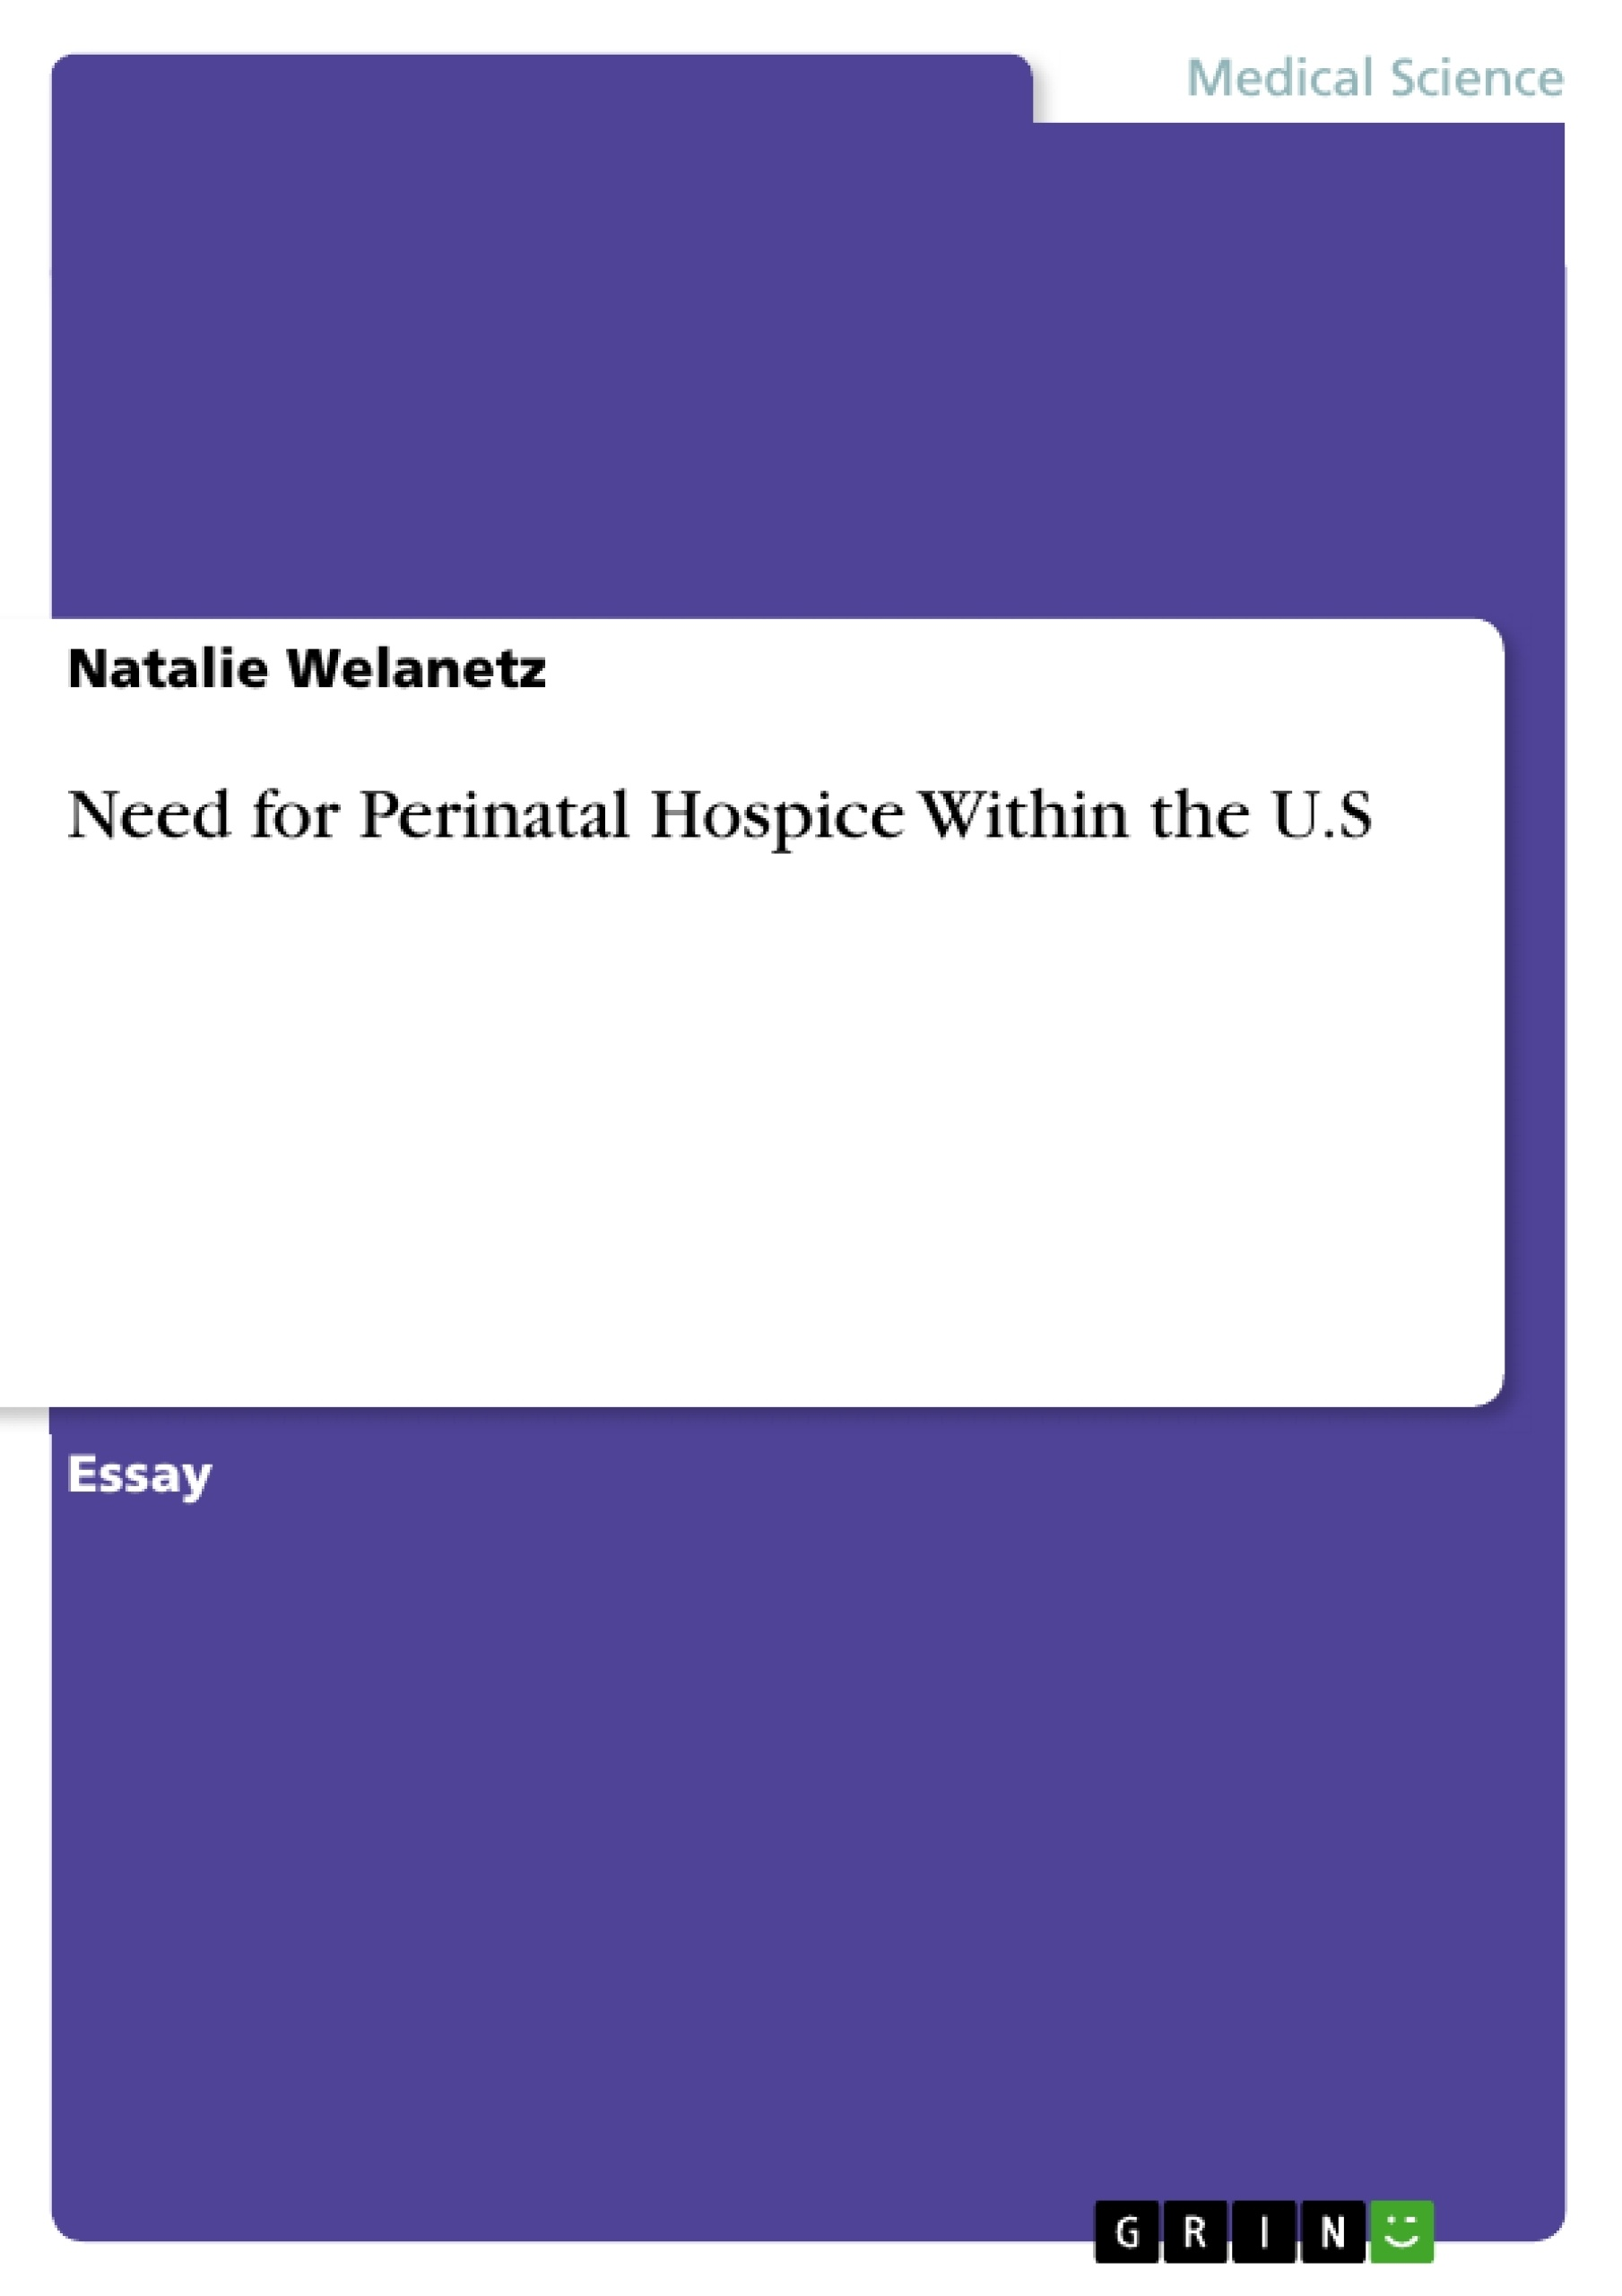 Title: Need for Perinatal Hospice Within the U.S